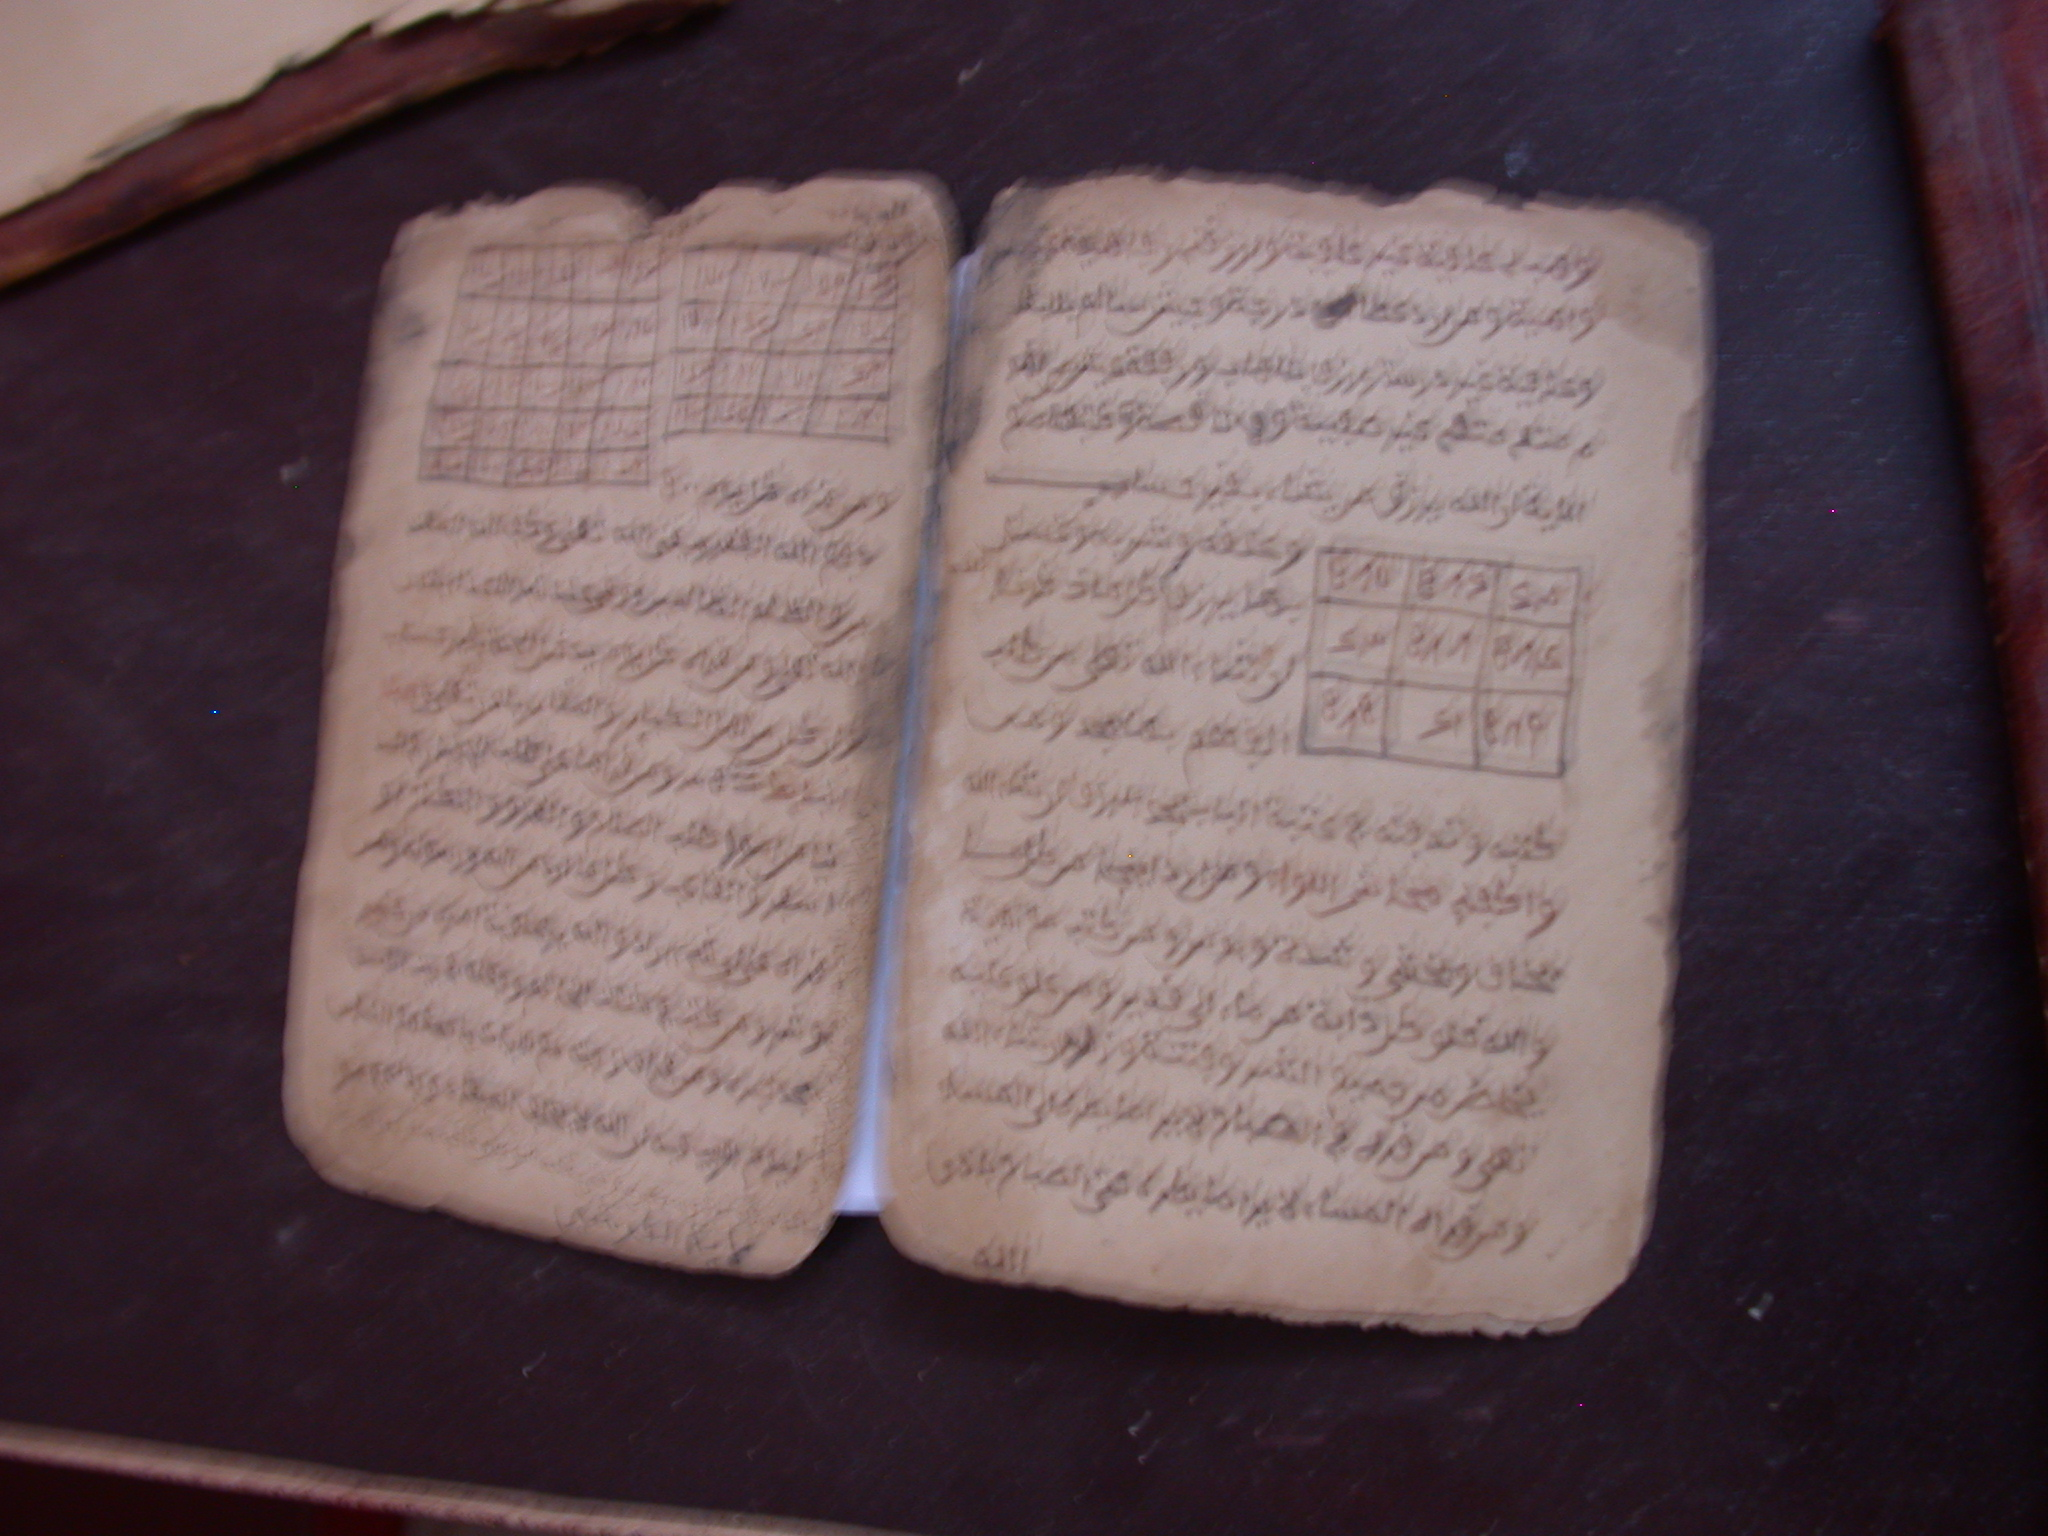 Need Transcription and Translation of Title, Marabout Magic Manuscript With Tables, Manuscript Library, Timbuktu, Mali